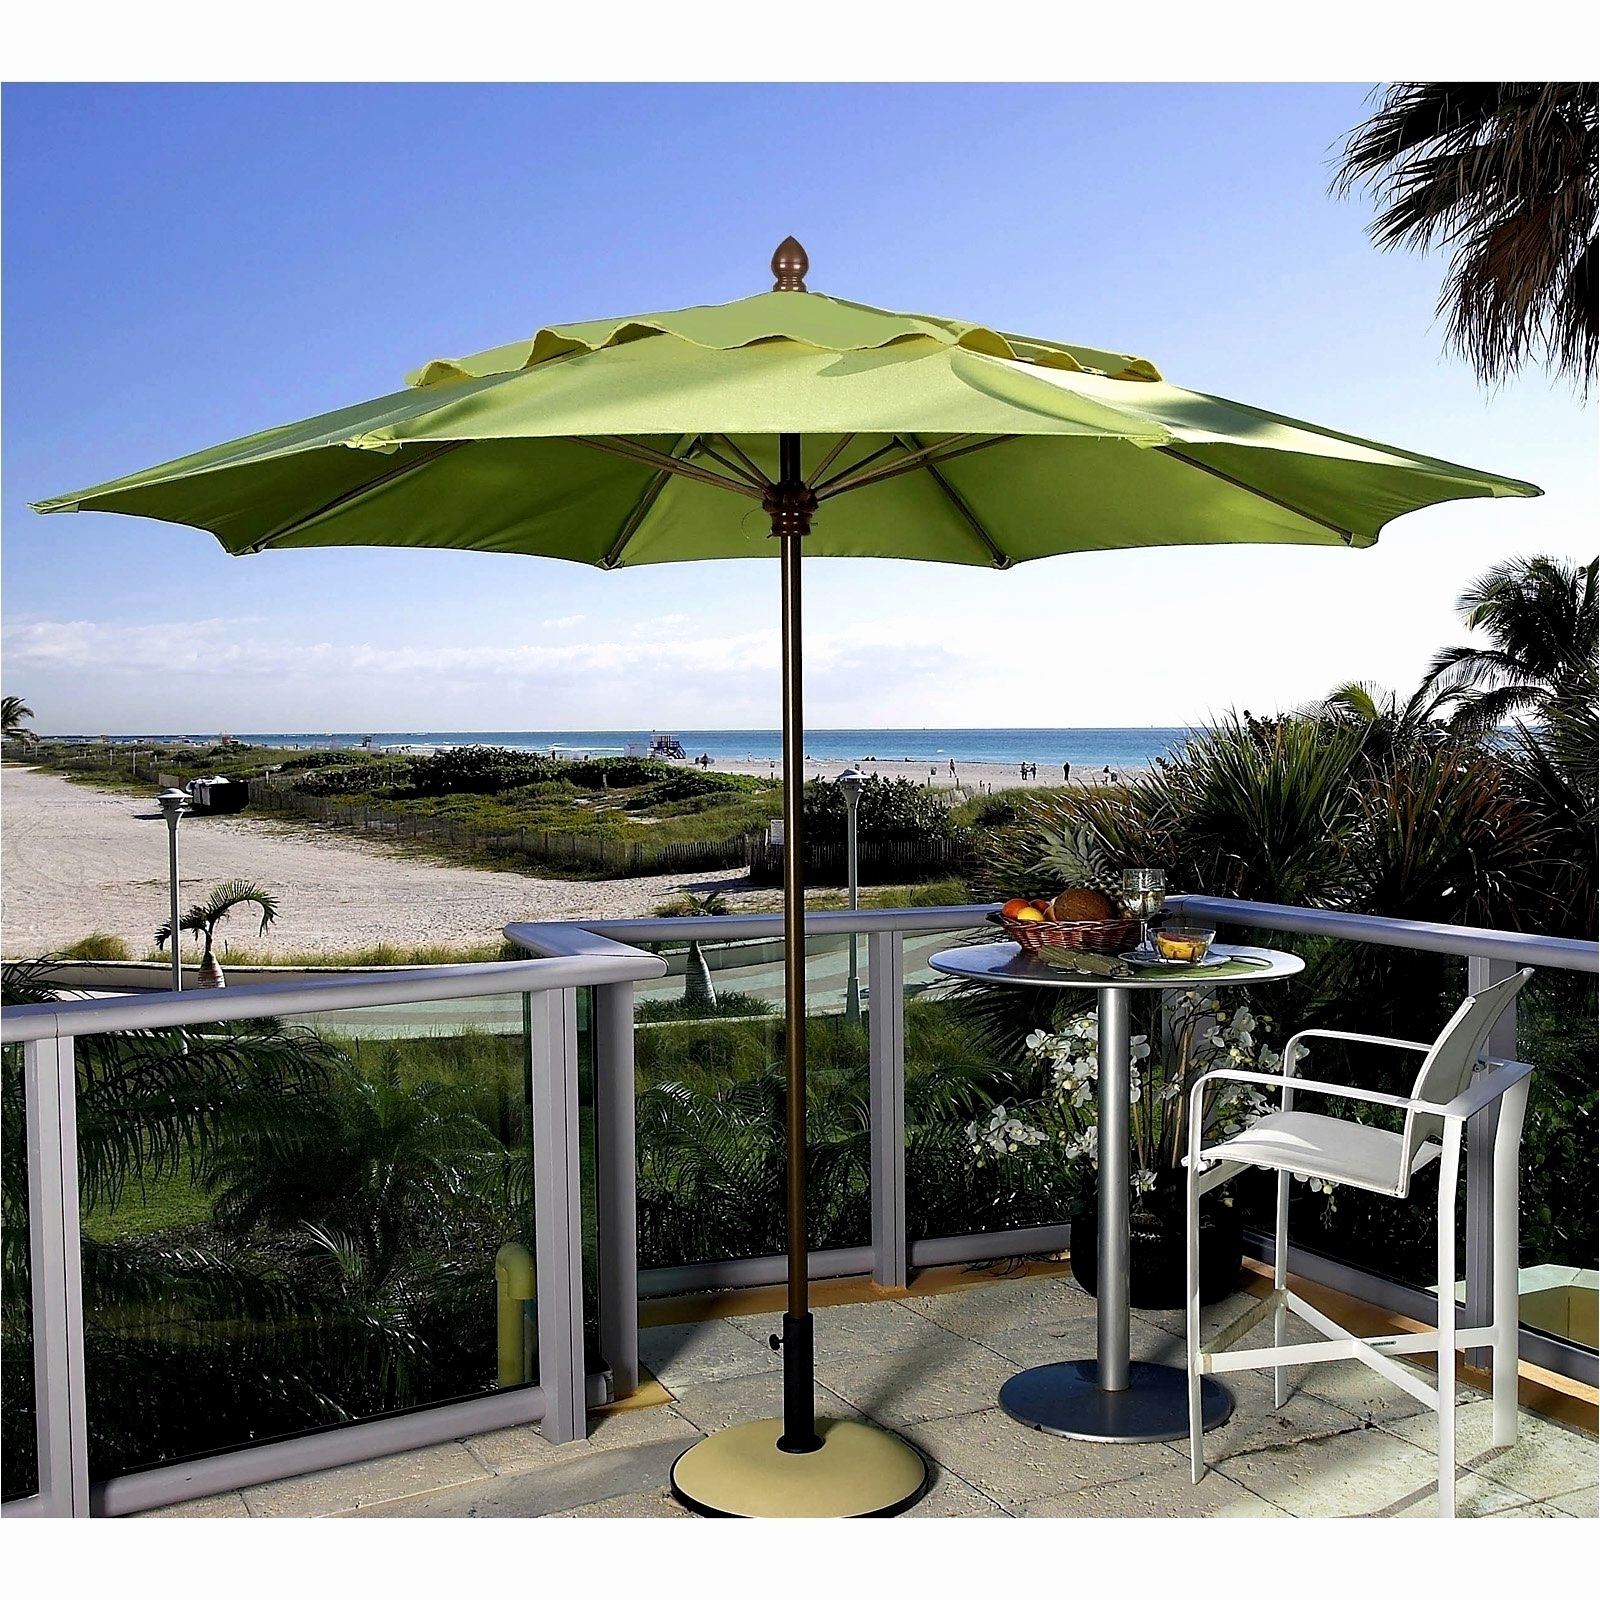 2018 Patio Umbrellas From Costco Pertaining To Lovely Ideas Outdoor Umbrella Costco Ikea Patio Umbrella – Best (View 1 of 20)